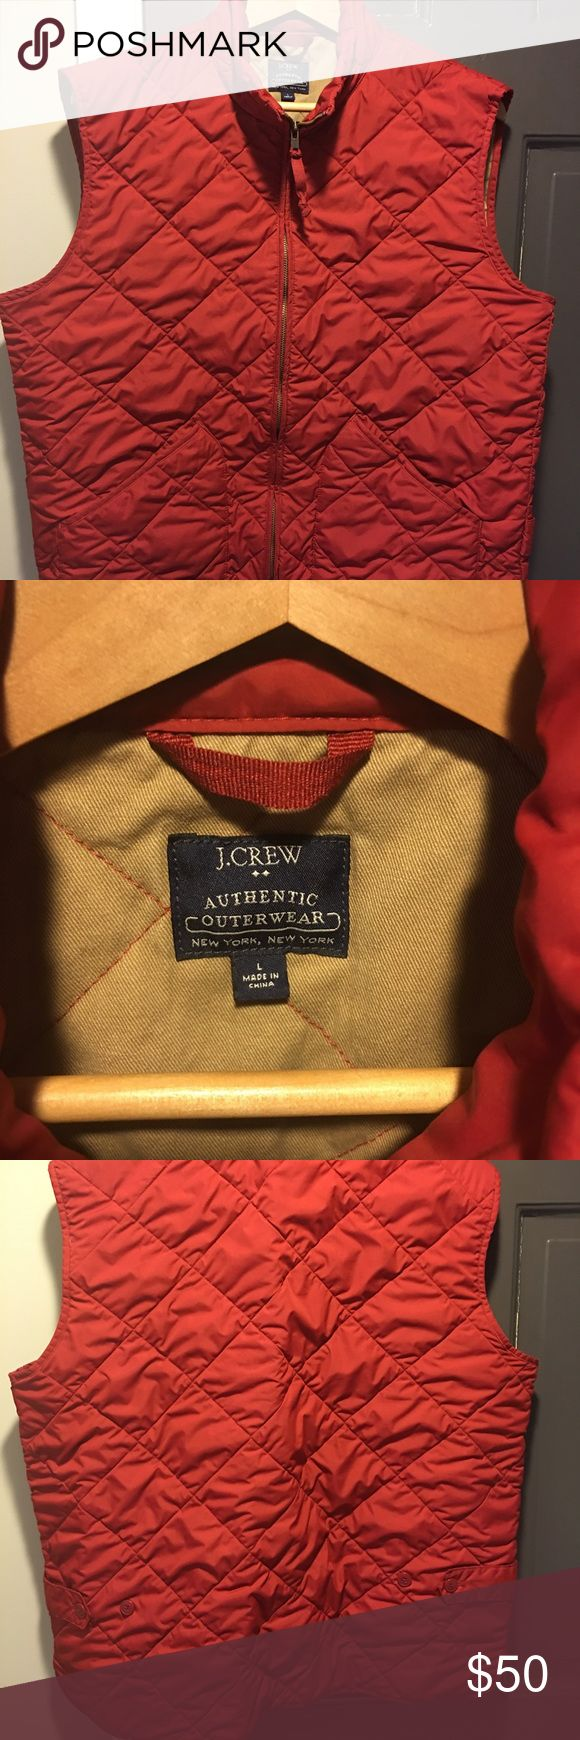 J. Crew Quilted Vest (Men) Gorgeous red colored Quilted Vest. Light weight so perfect for cool days. Great condition. No stains or rips J. Crew Jackets & Coats Vests